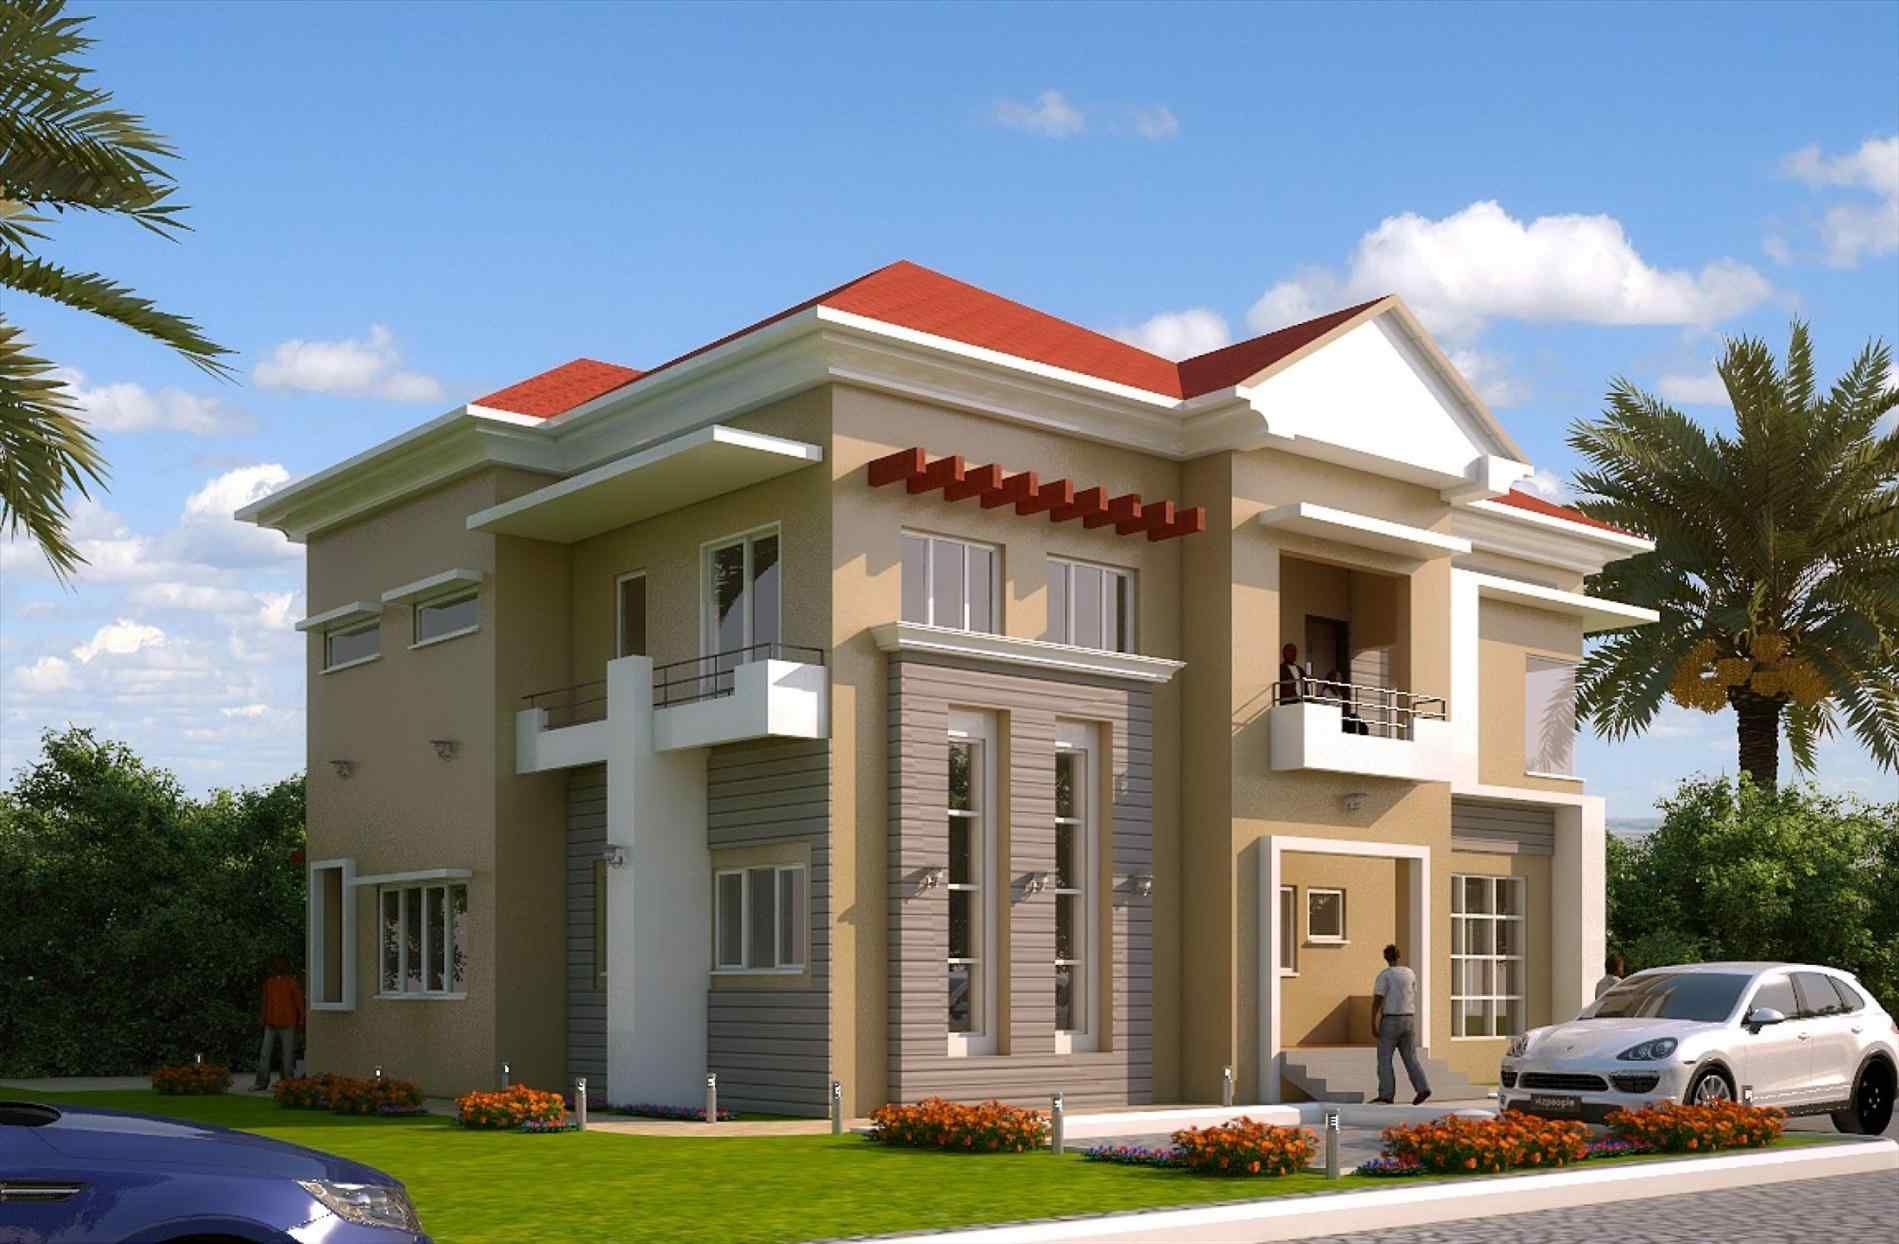 Images Of House Roof Designs Home Roof Ideas House Roof Design Roof Design House Paint Exterior